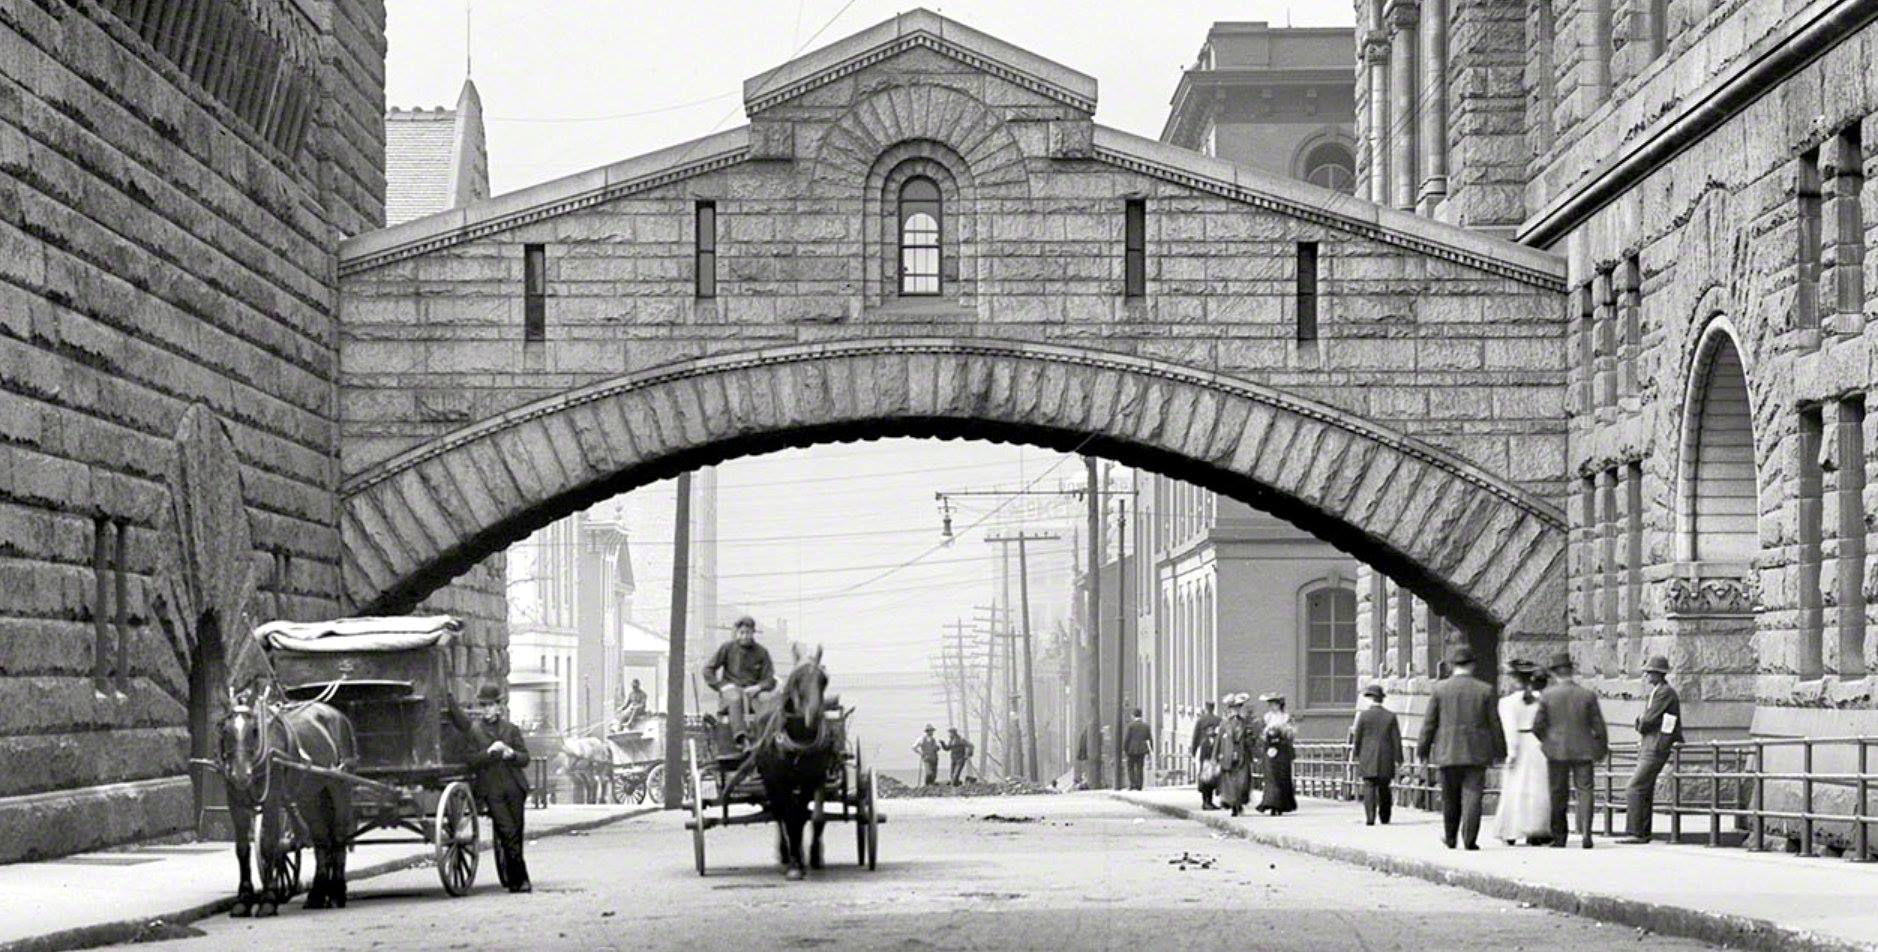 Bridge of Sighs, Pittsburgh, PA (1903)